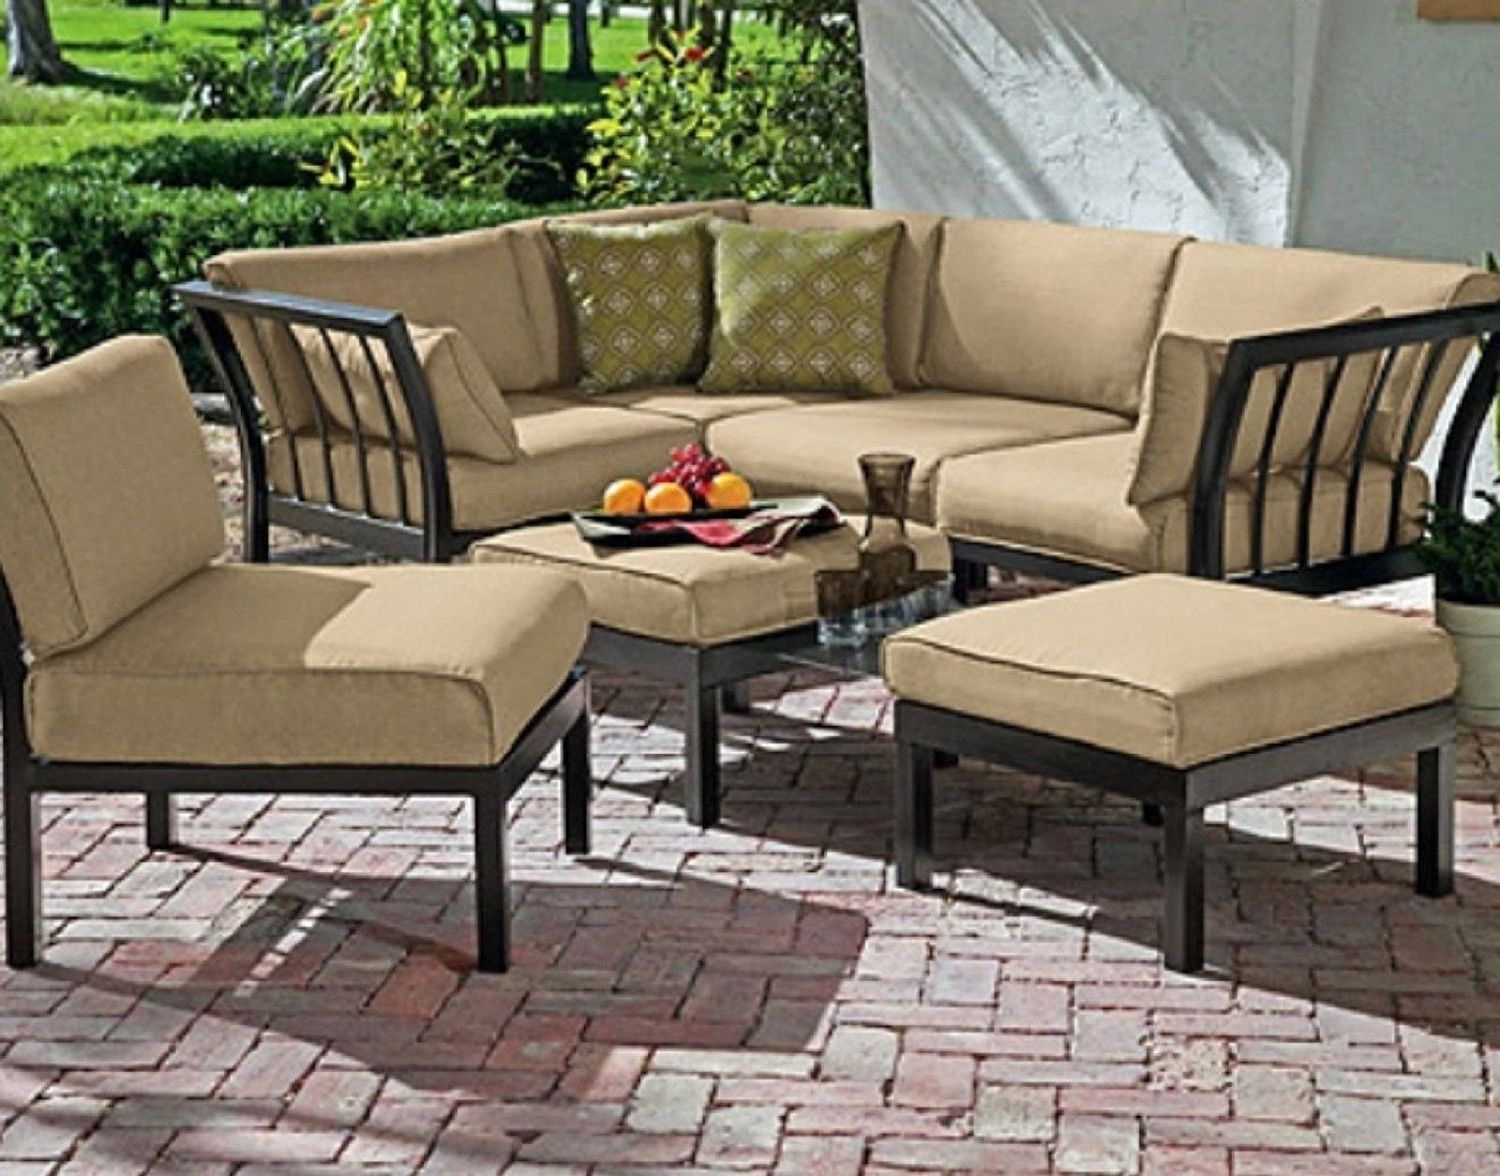 Costco Sunroom Furniture Patio Conversation Sets Clearance Target Within Famous Patio Conversation Sets At Target (View 4 of 20)